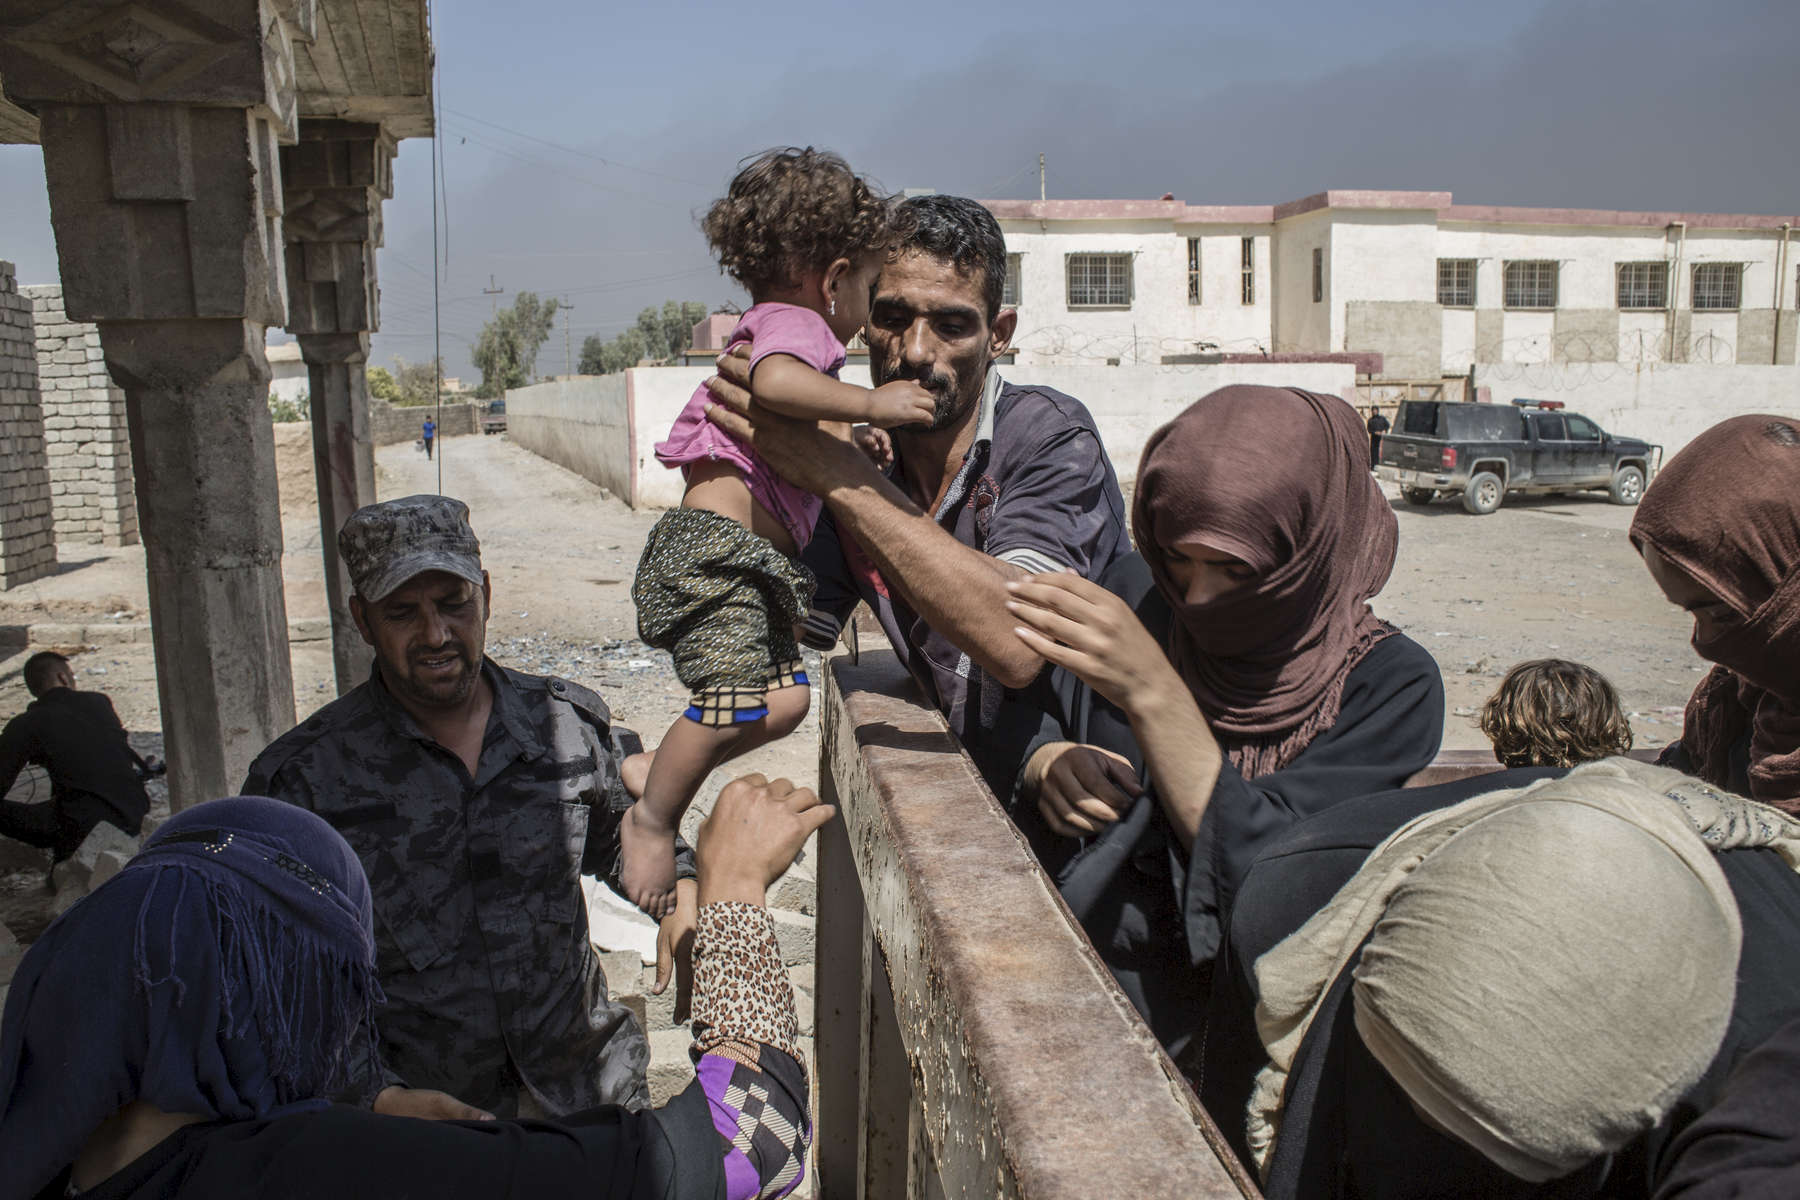 02/09/2016 -- Haji Ali Village, Iraq -- Tens of thousands of Iraqis have been displaced from their homes in villages around Mosul since March. The UN expects up to one million could flee fighting during the battle for Mosul itself.